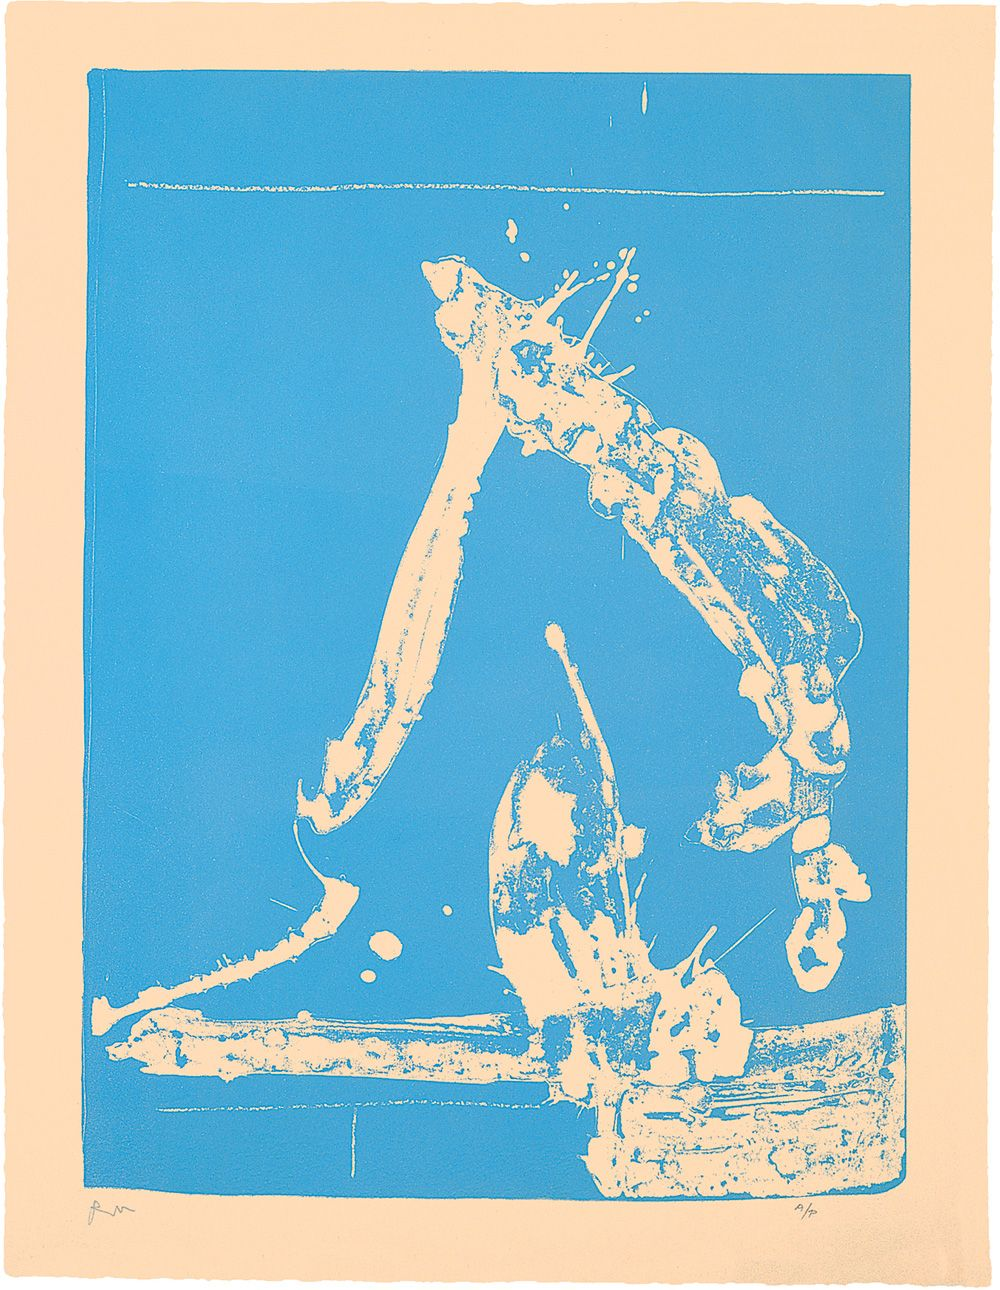 Robert Motherwell-By the Sea-1981 Poster